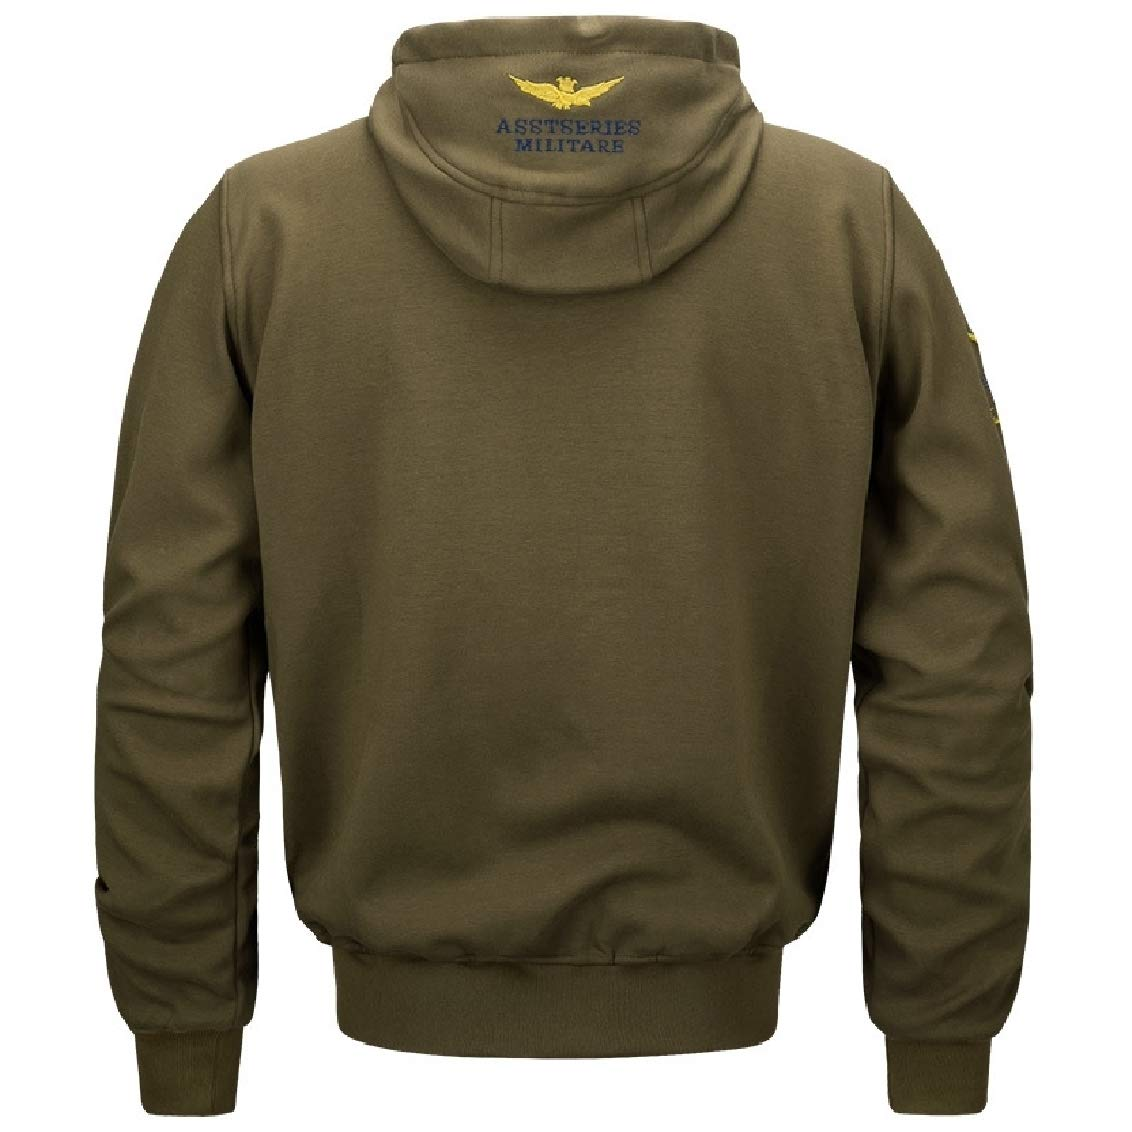 d3637d3463 ... Army Army Army Green Freely Men's Hood Leisure Athletic Embroidery  Cotton Coat Jacket bf1a14